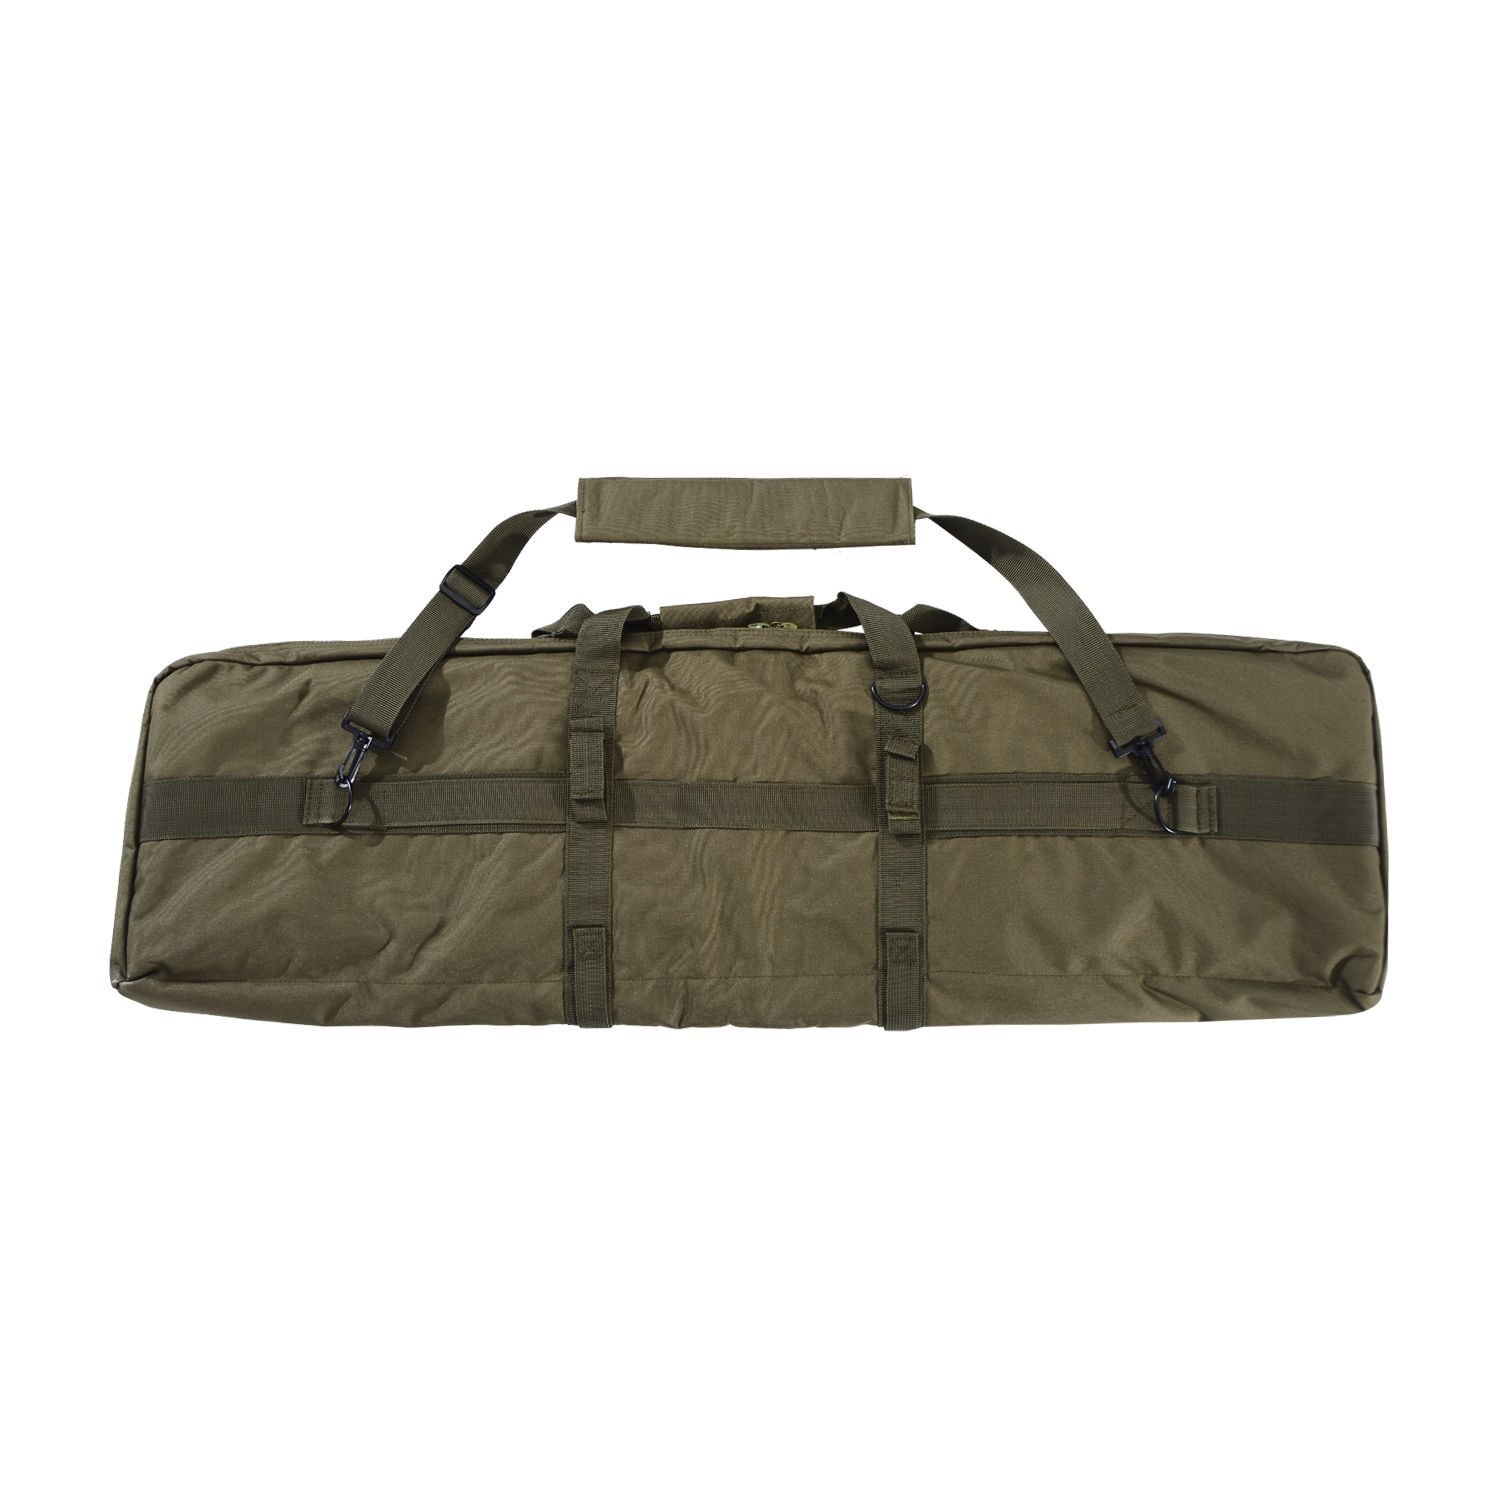 Generic O-8-O-4145-O le Pouc Weapon Gun Molle n Gun M Tactical Single Carbine rbine W 42¡å Padded al Sing Pouch w/Strap ag Case Rifle Bag Case NV_1008004145-TYQFUS32 by Generic